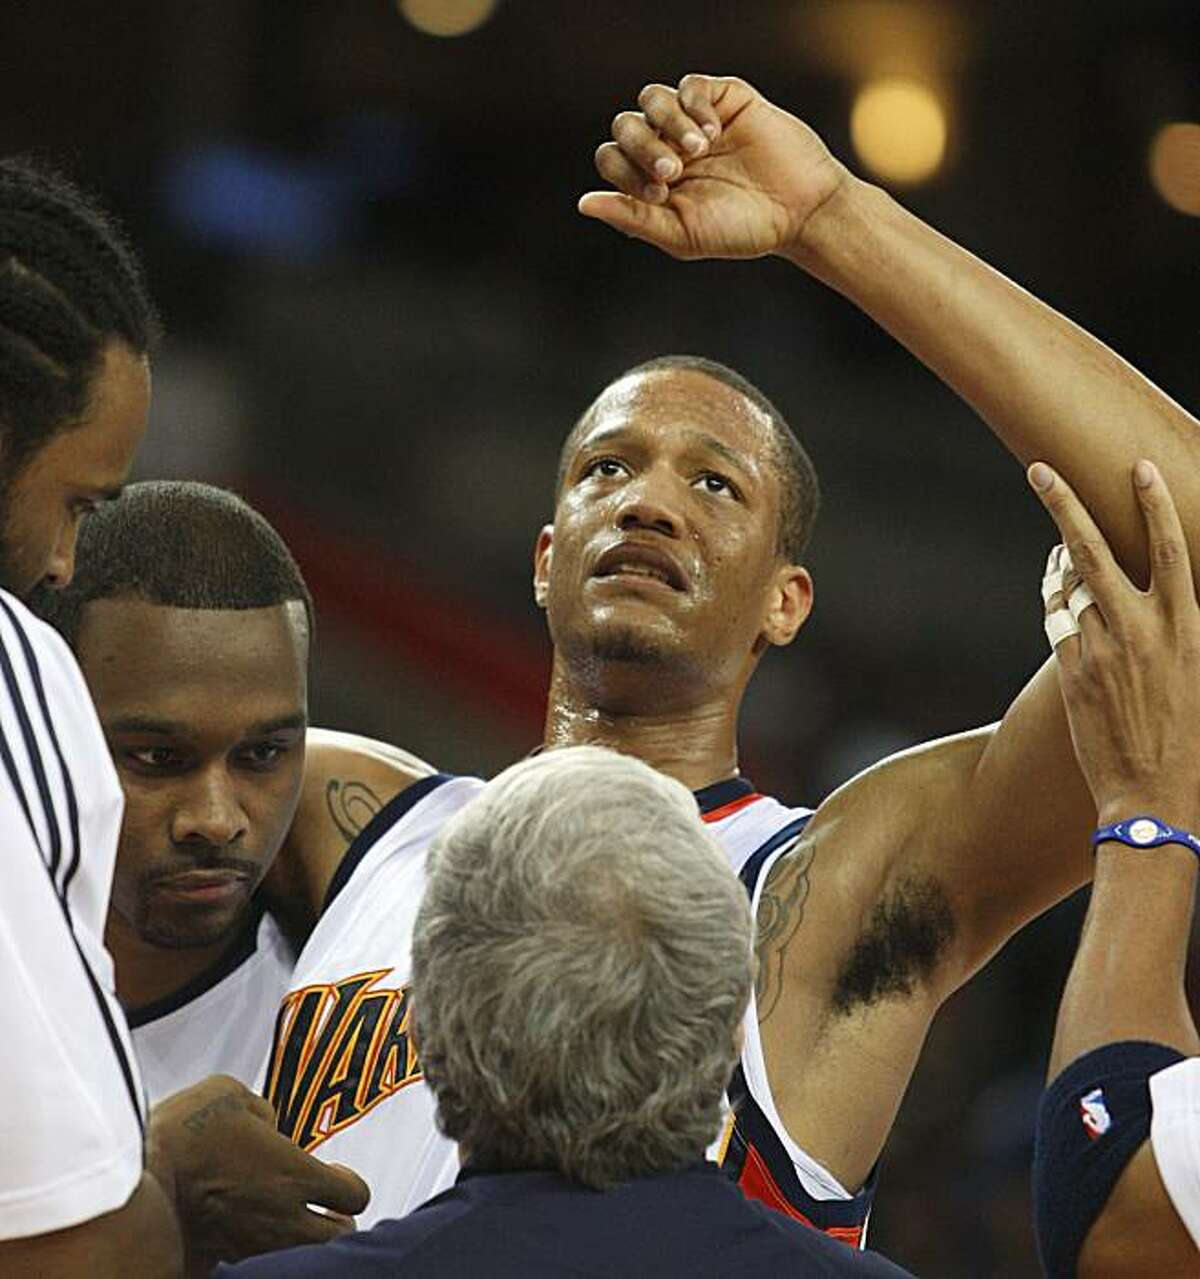 Golden State Warriors' Anthony Randolph is assisted off the court after injuring his ankle during the first half of an NBA basketball game against the Sacramento Kings, Friday, Jan. 8, 2010, in Oakland, Calif.